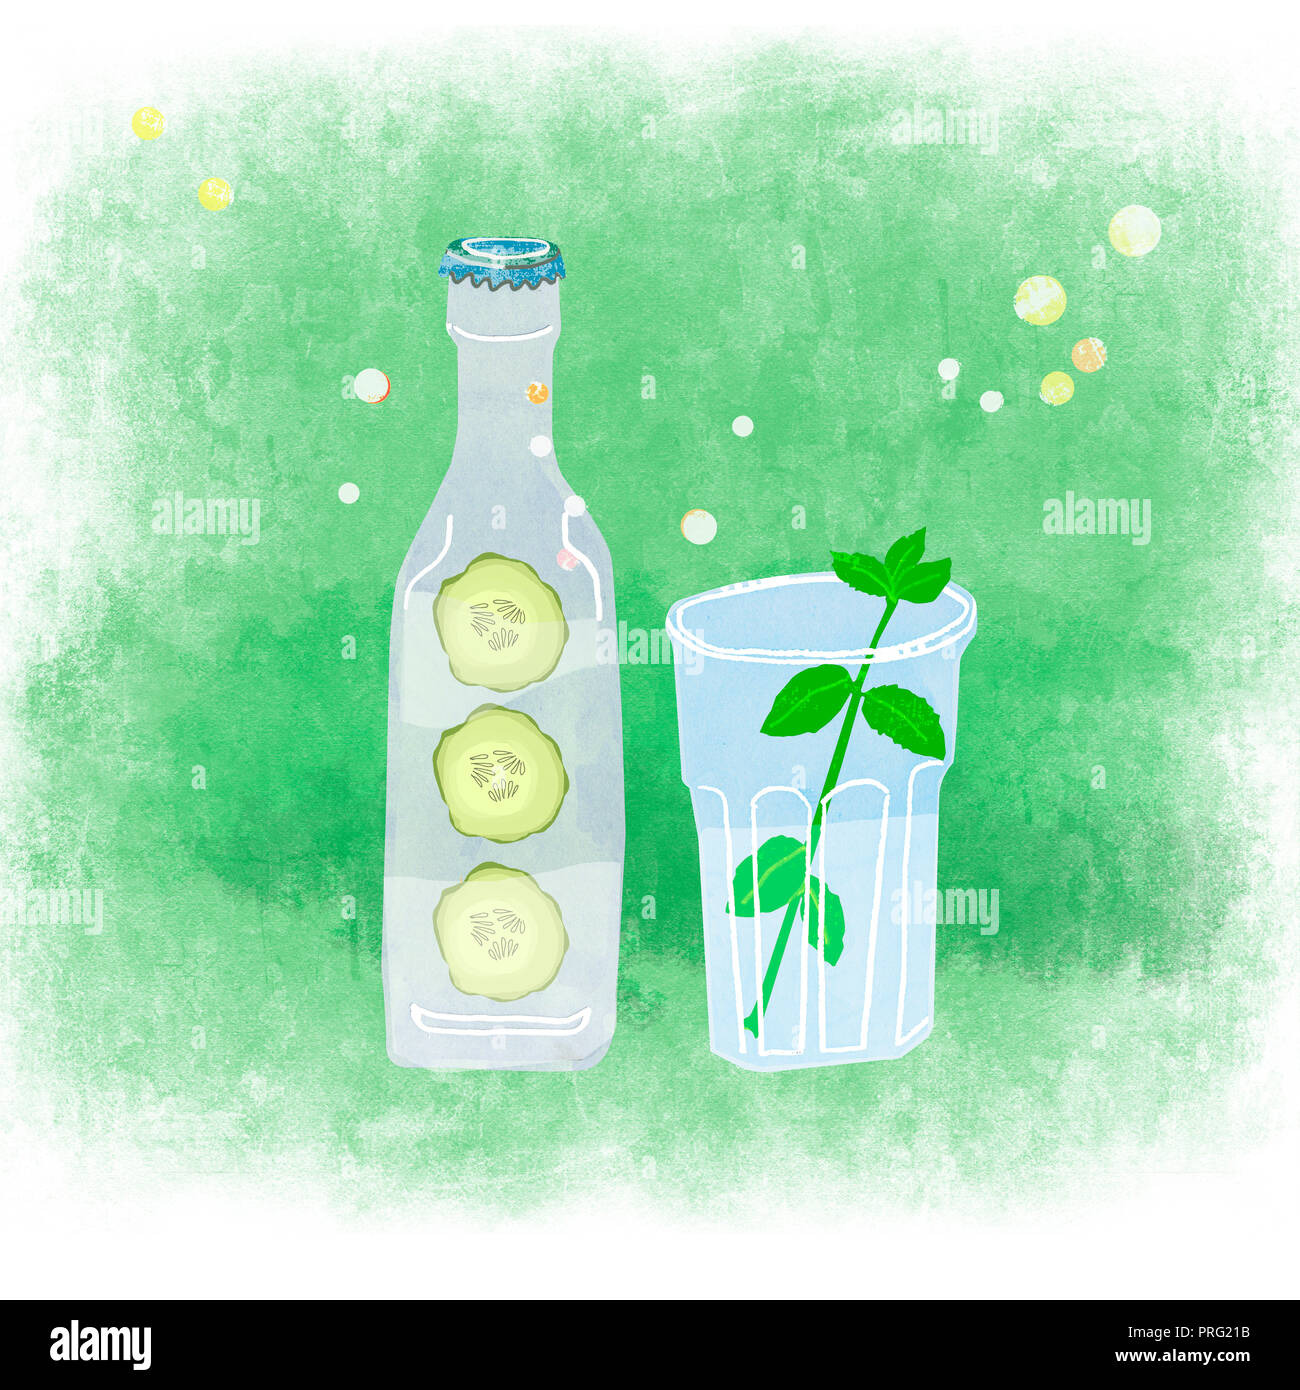 a bottle and a glass with natural drink - Stock Image